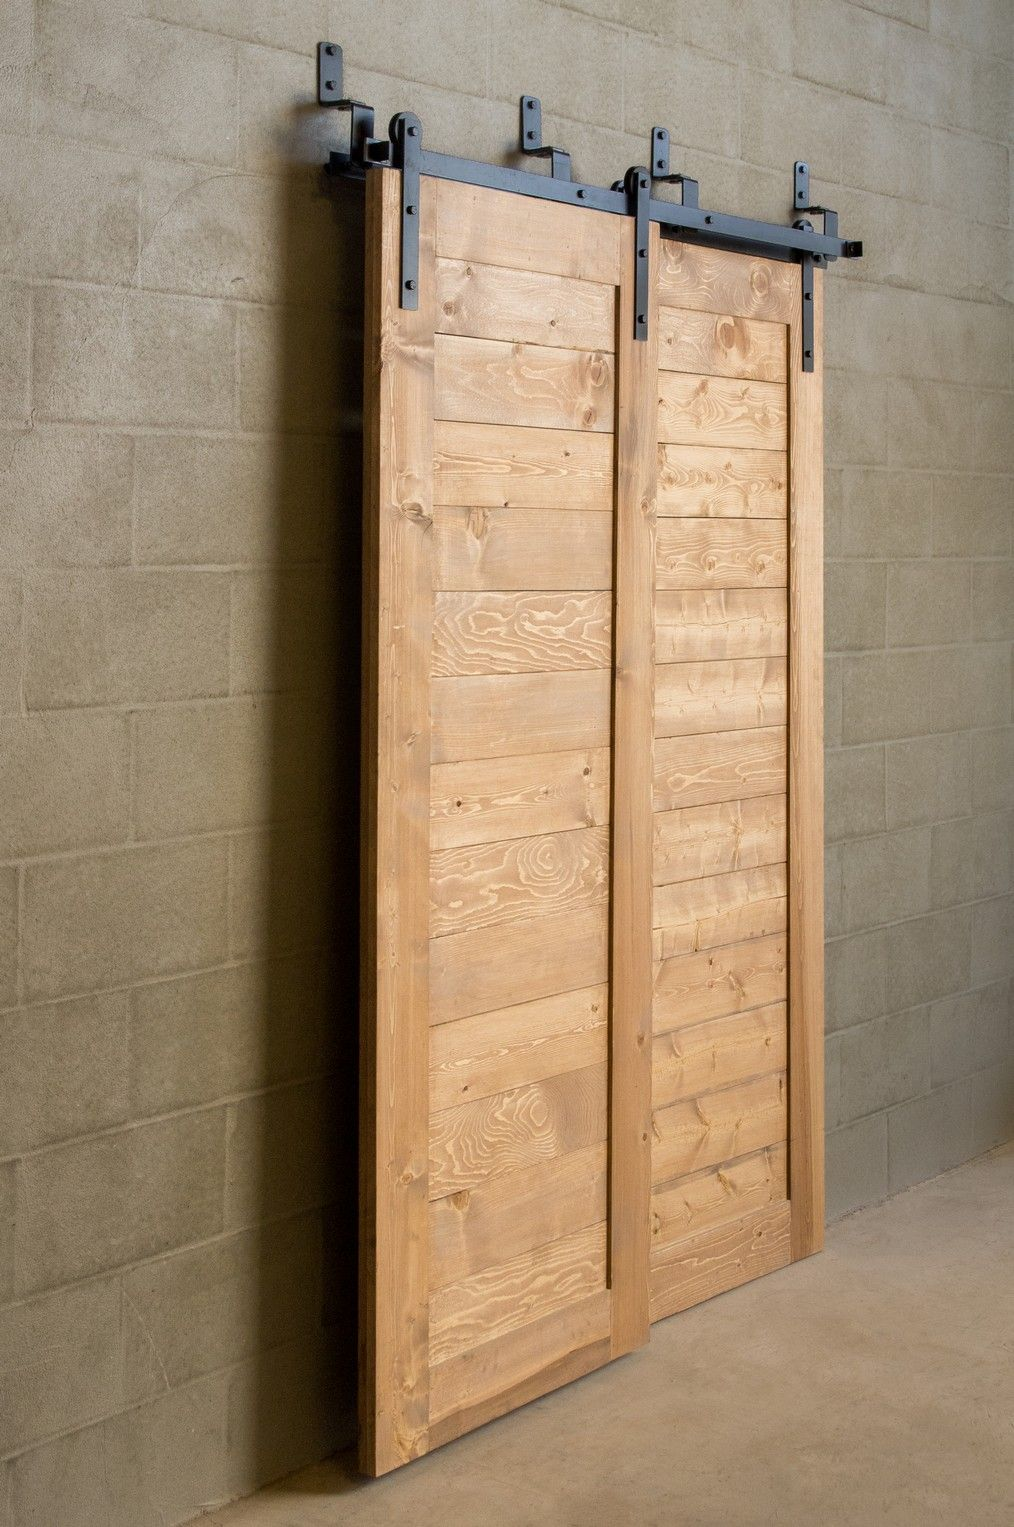 Bypass sliding barn door for tight spaces 625 hardware for Barn door closet door ideas